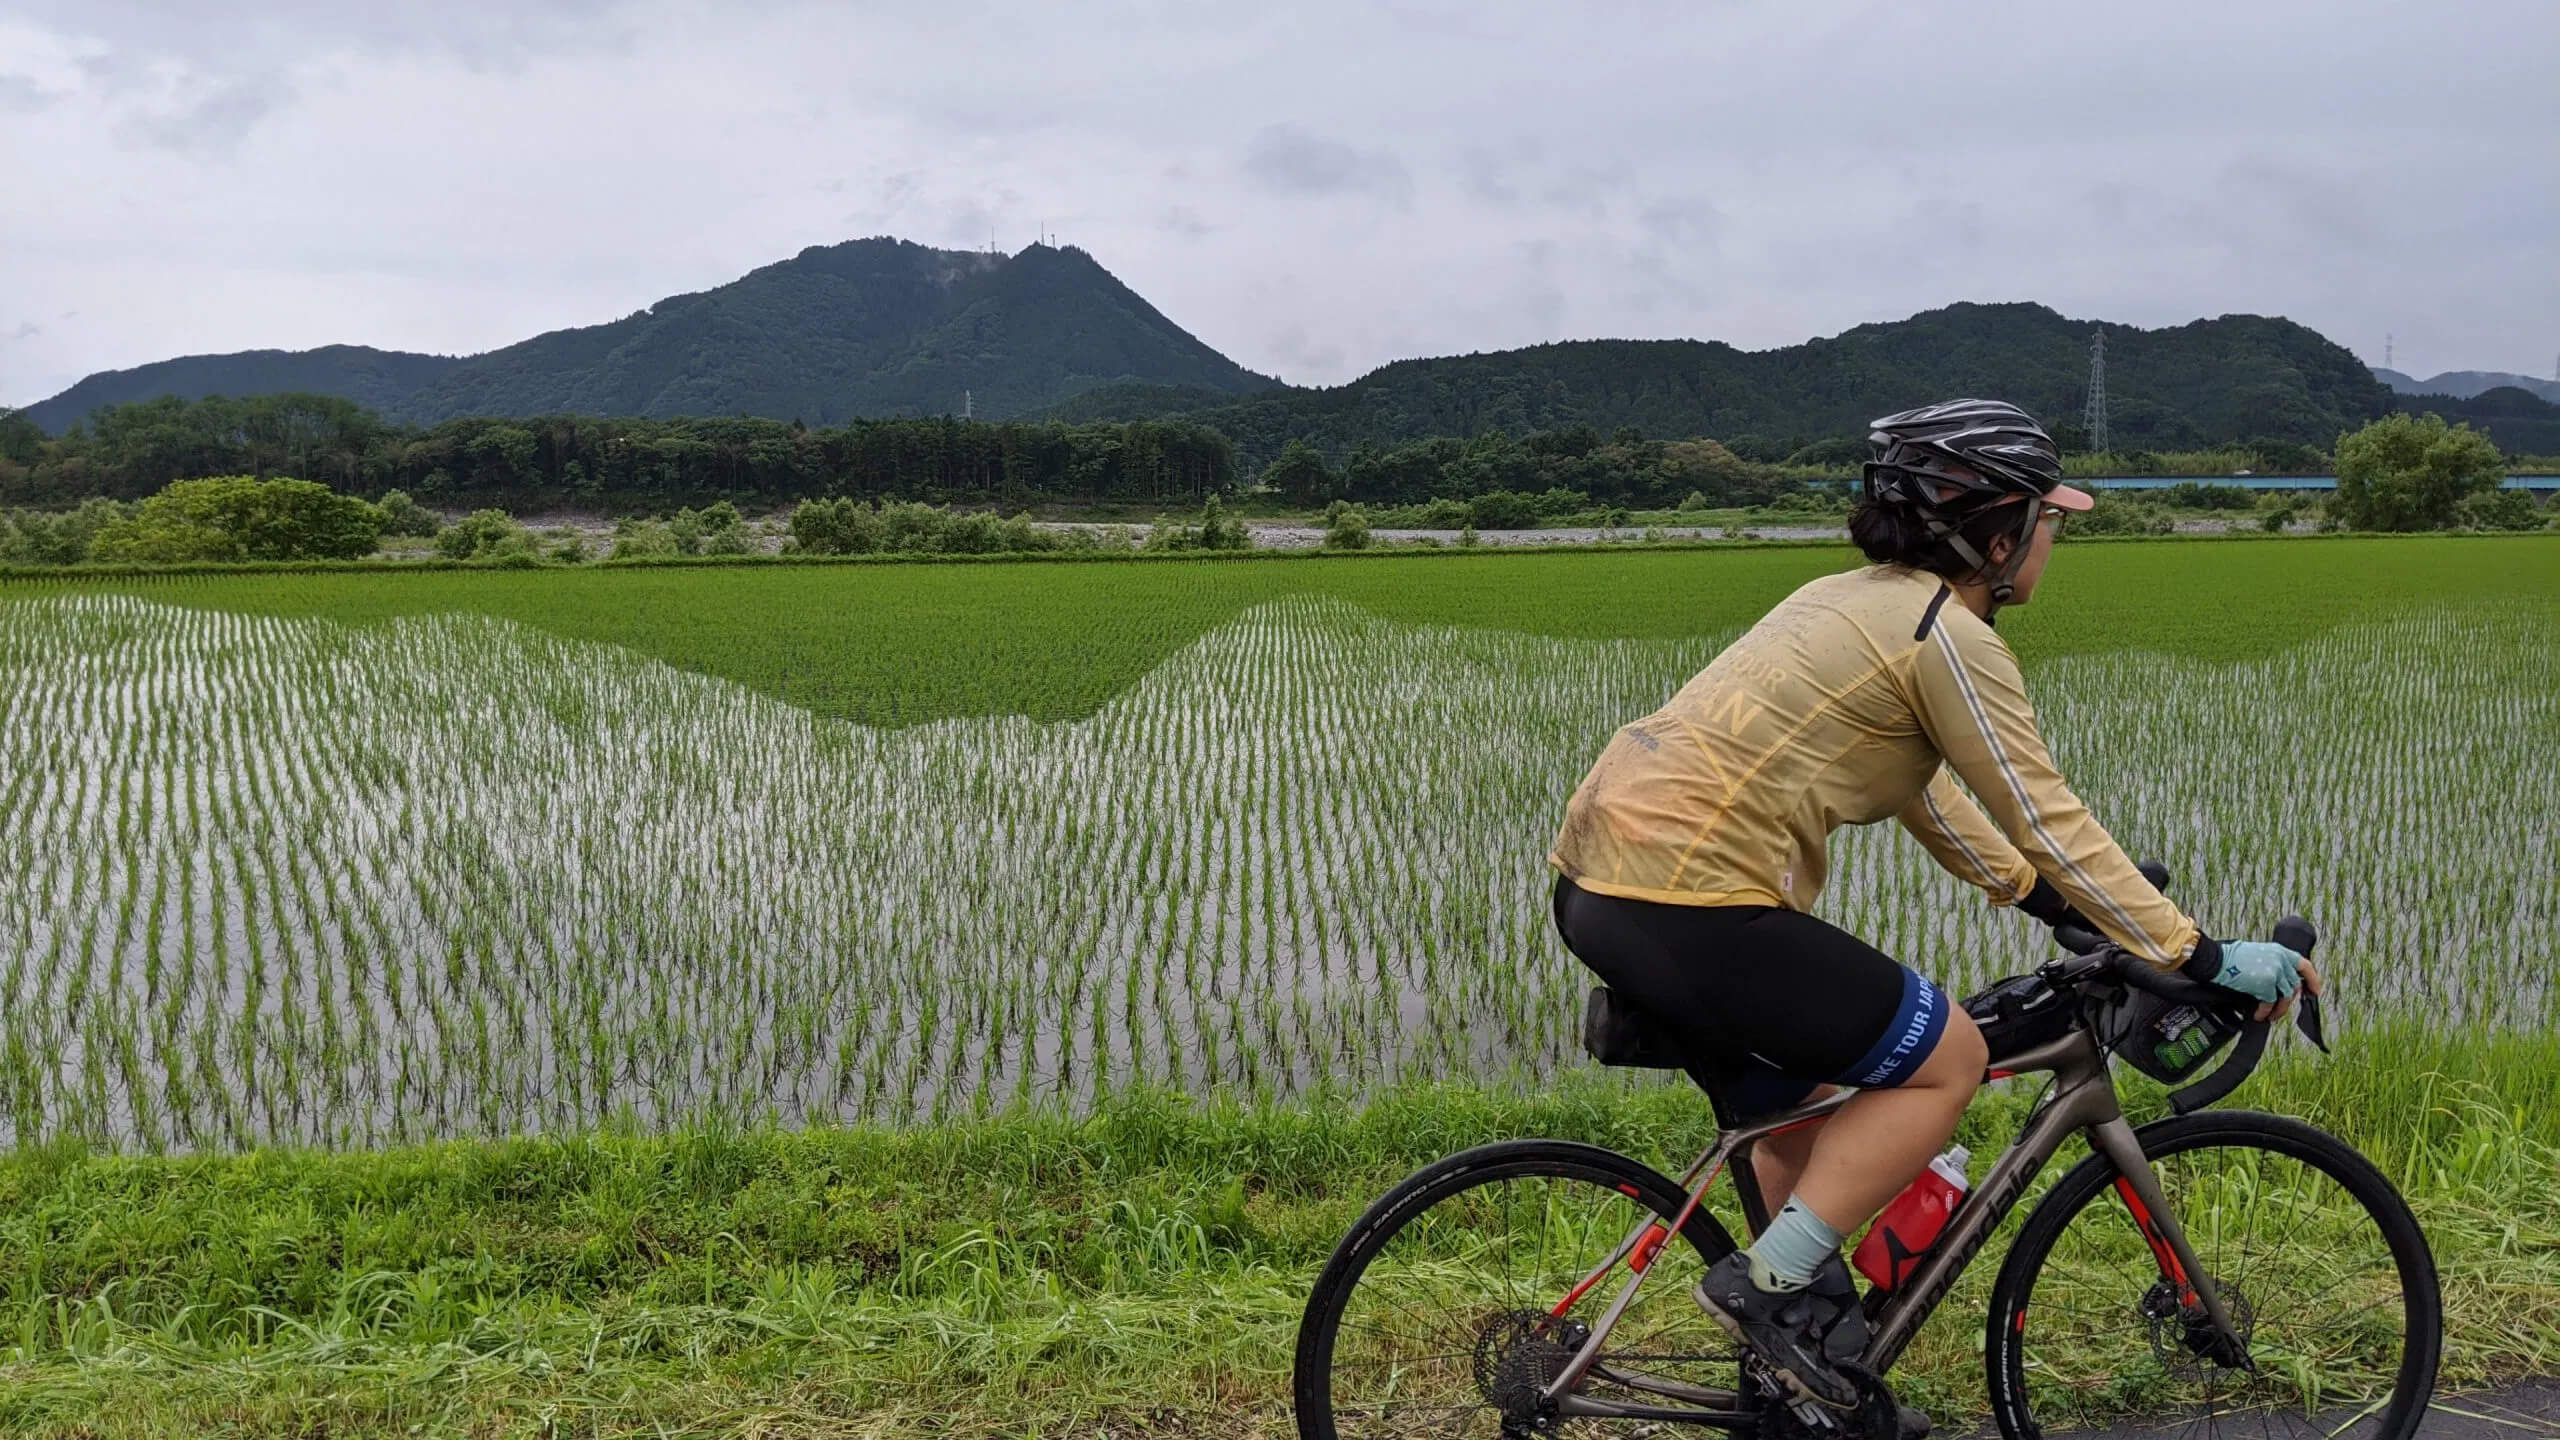 The reflections in the newly planted rice fields can be mesmerizing as you ride by.